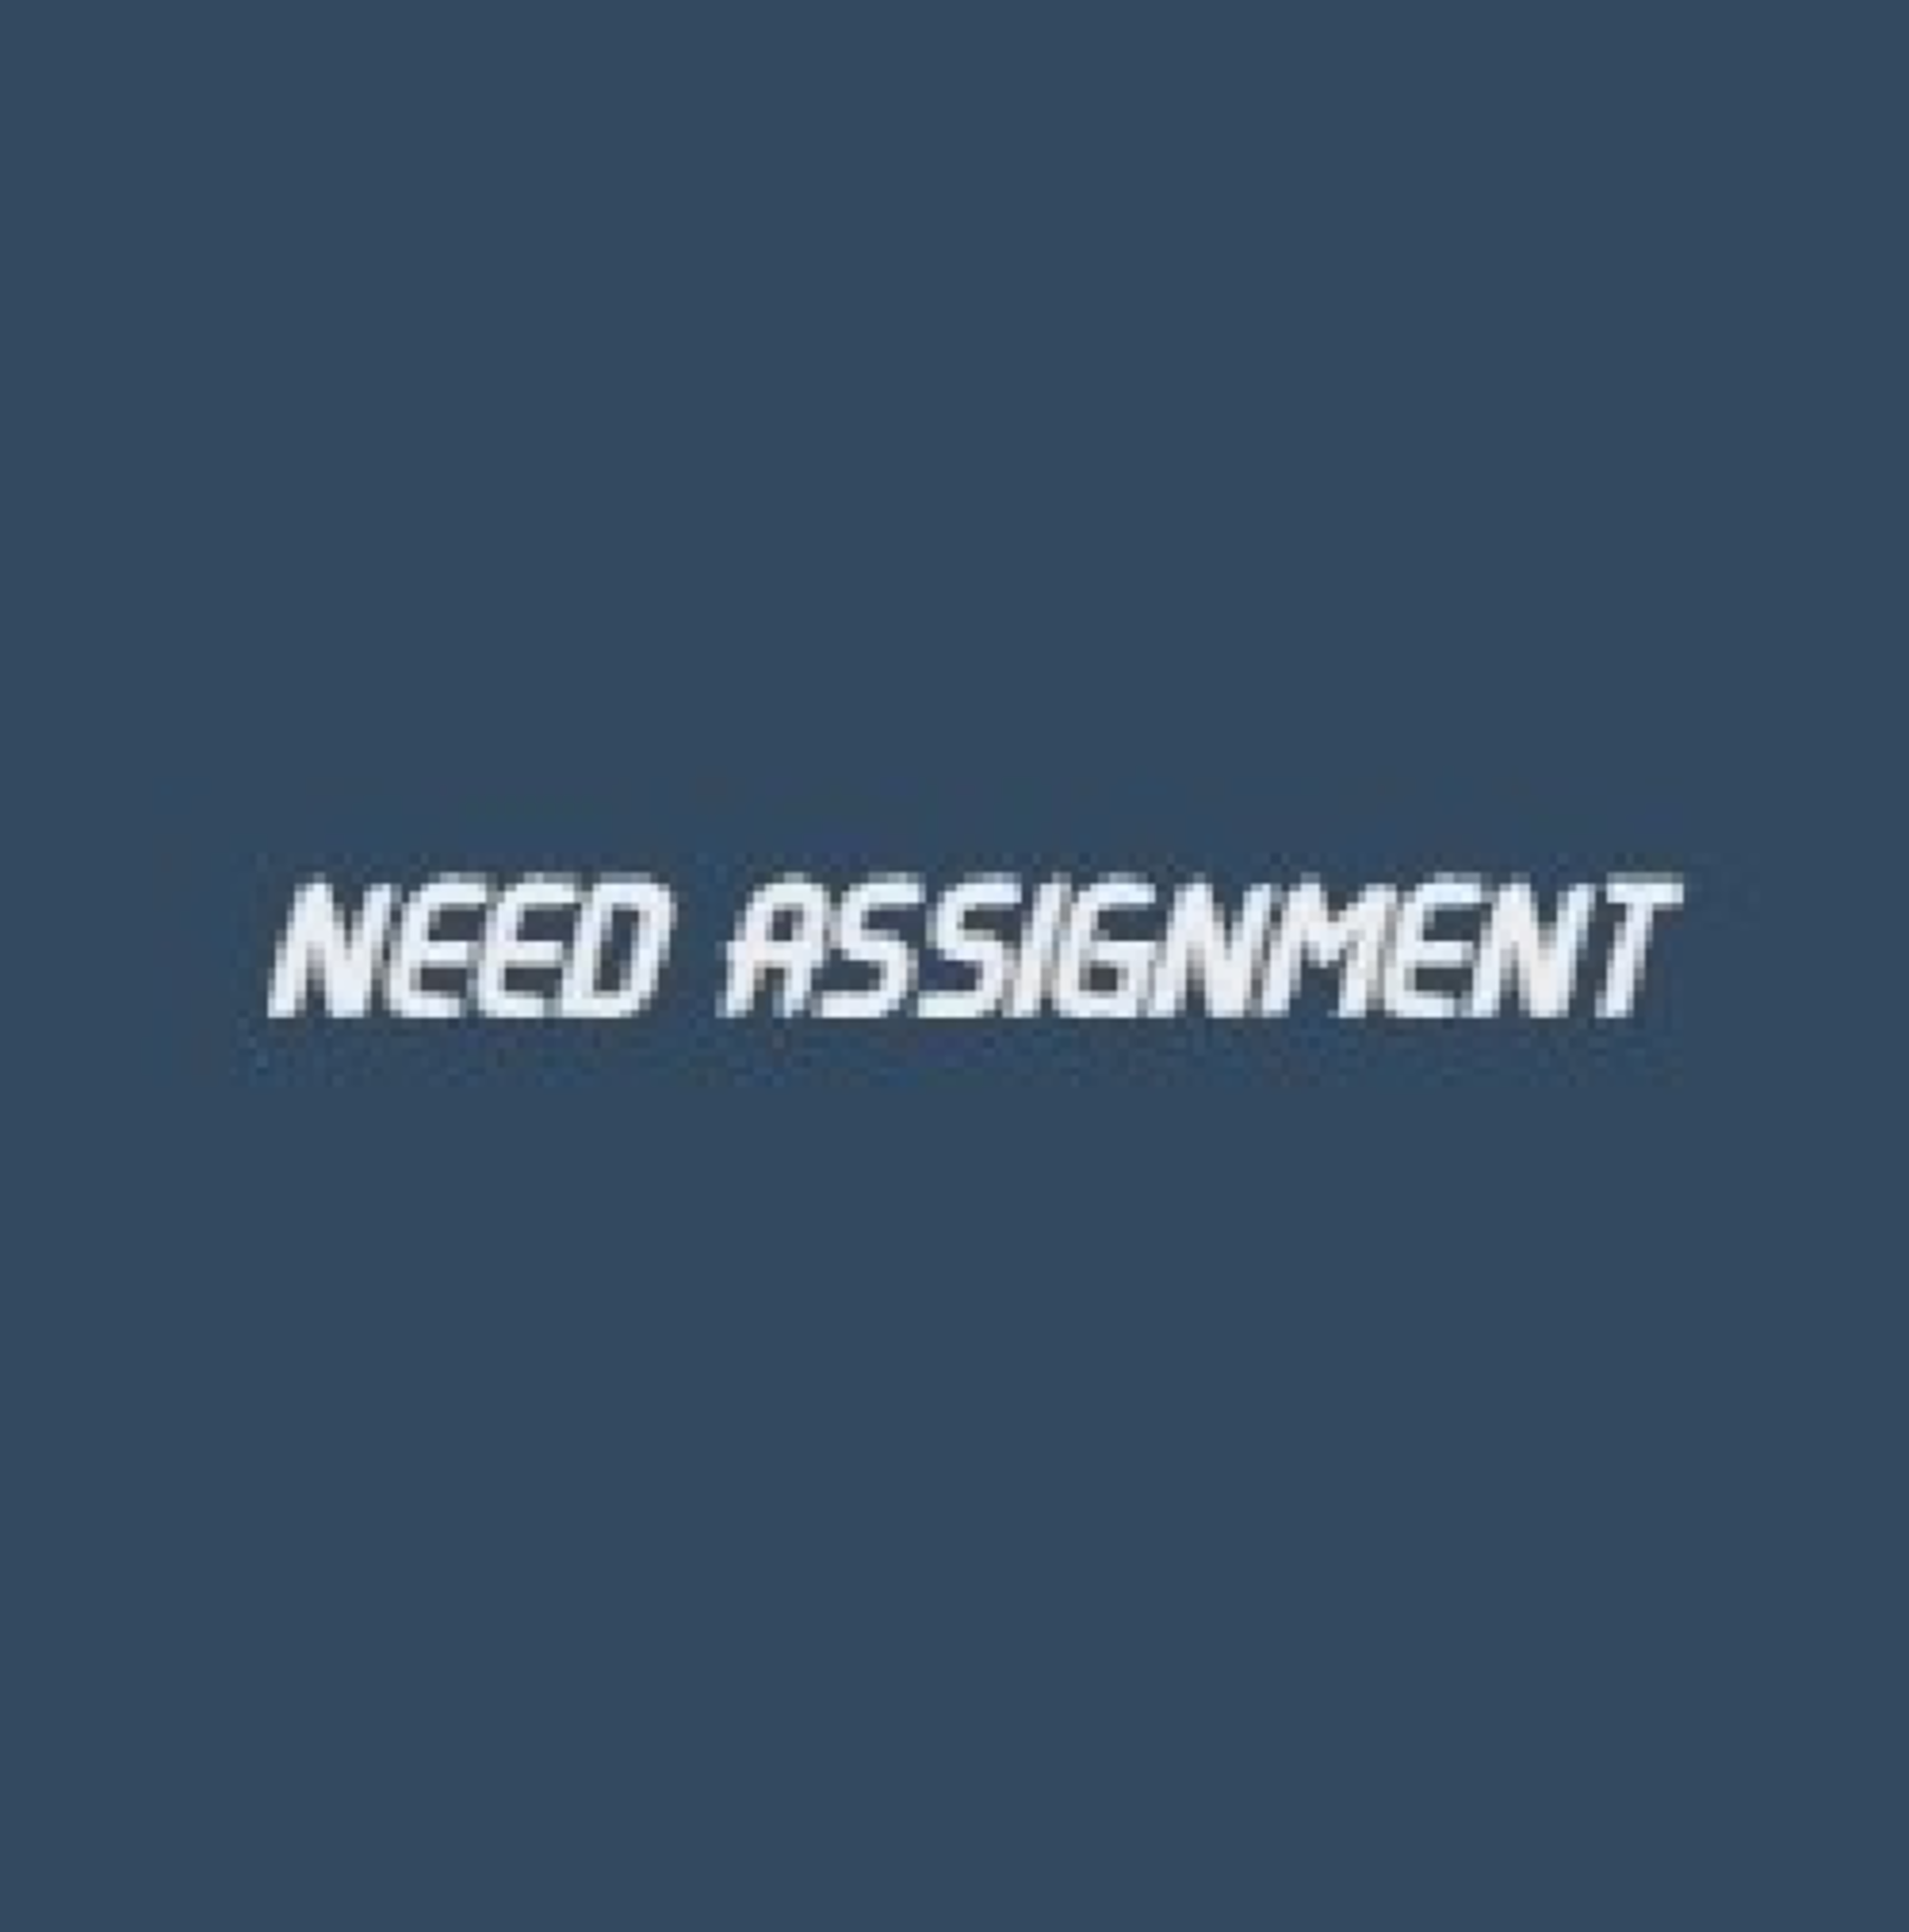 Assignment Help from Need Assignment